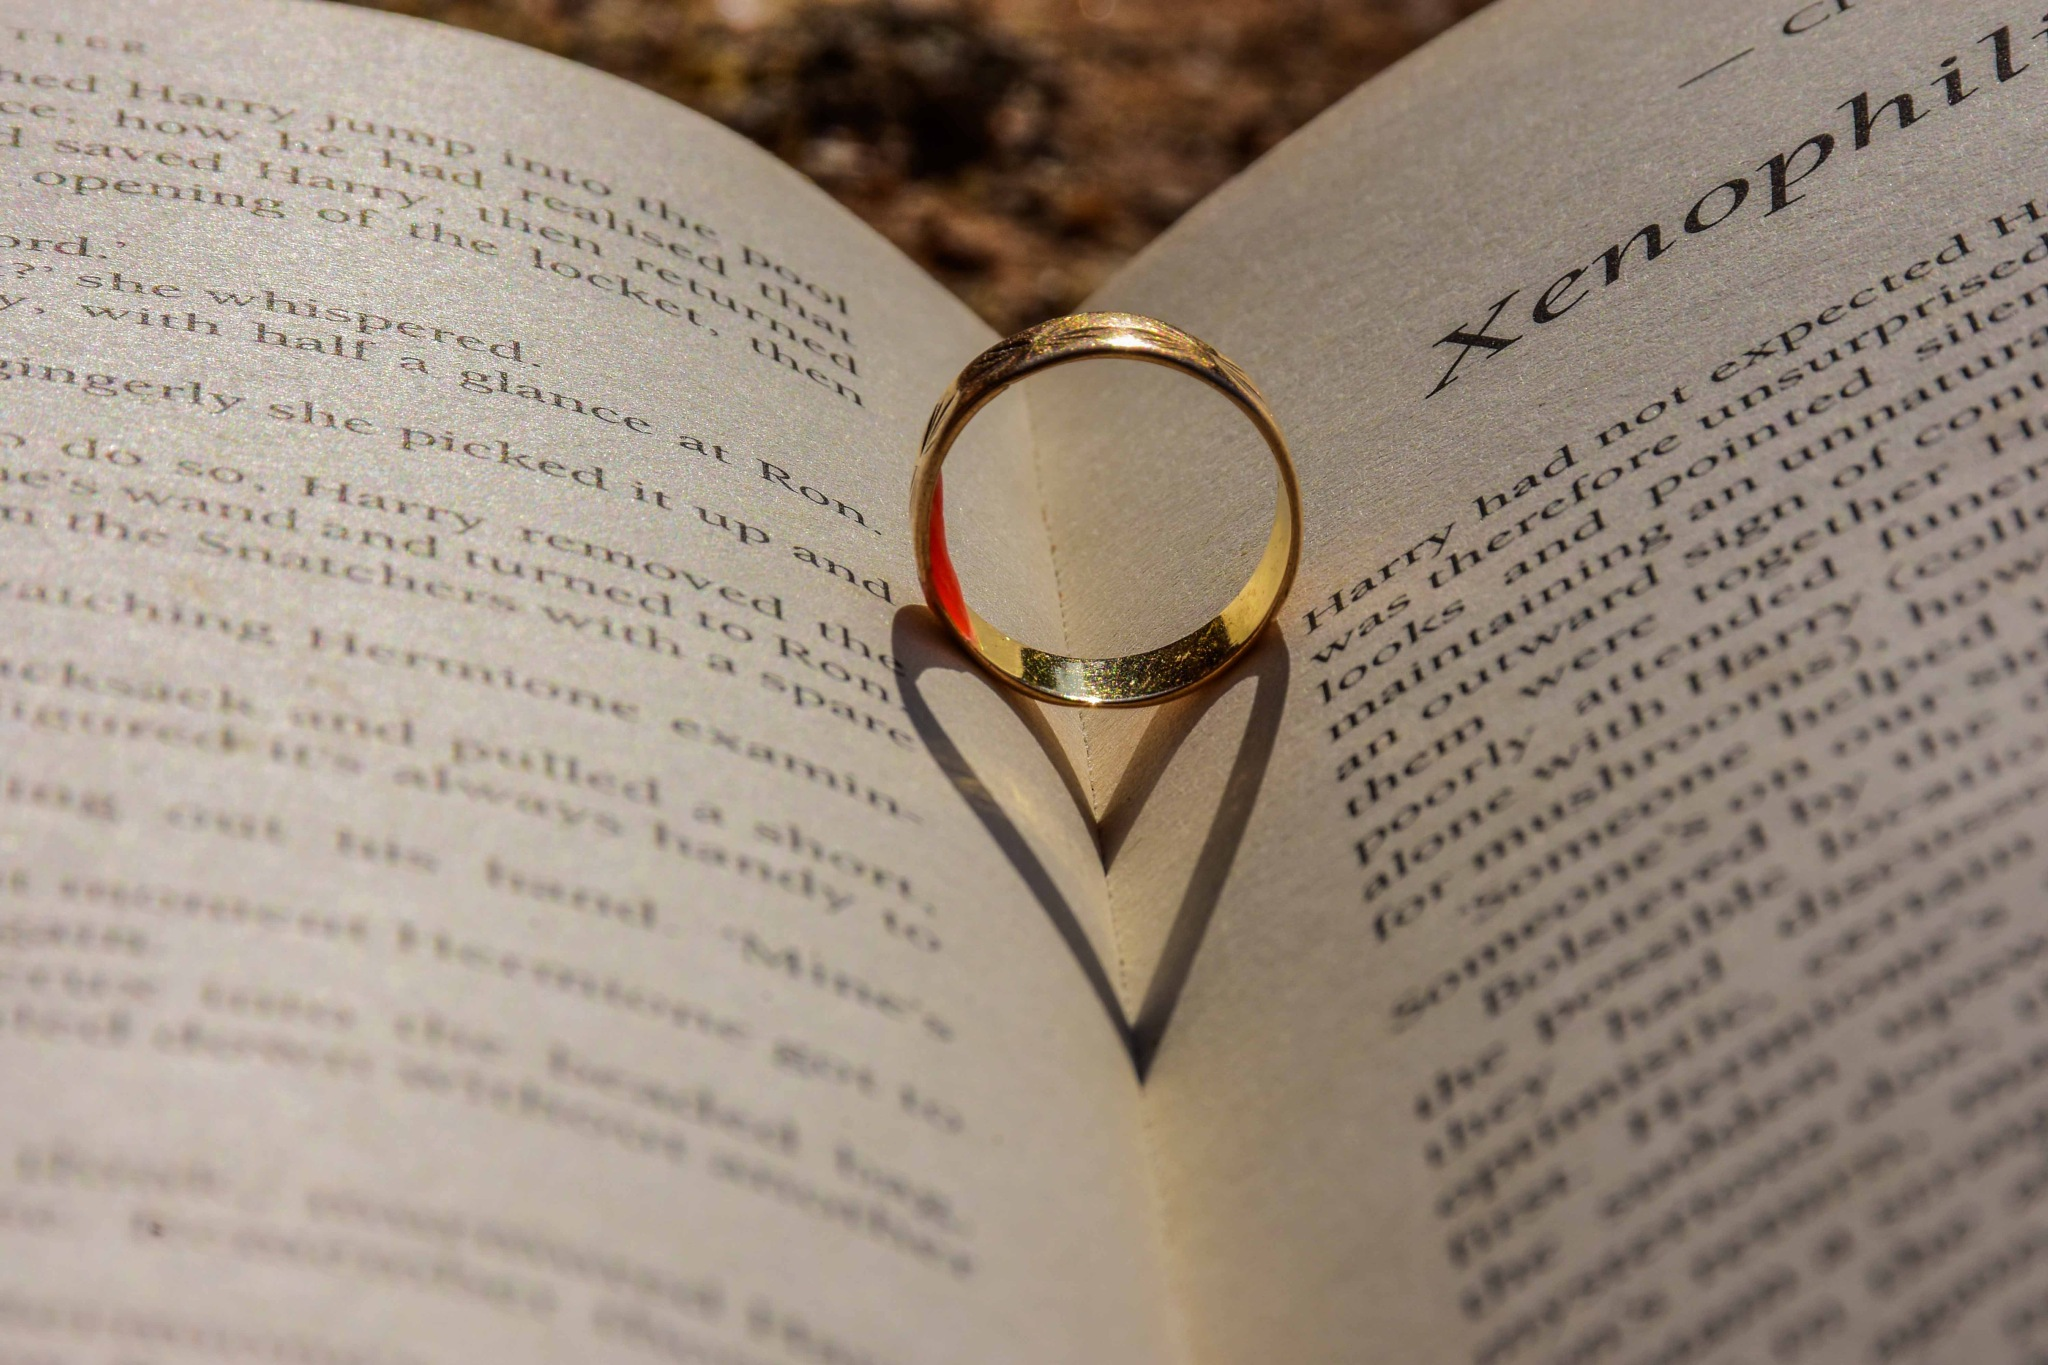 Love in the Book by ayyashahamed1